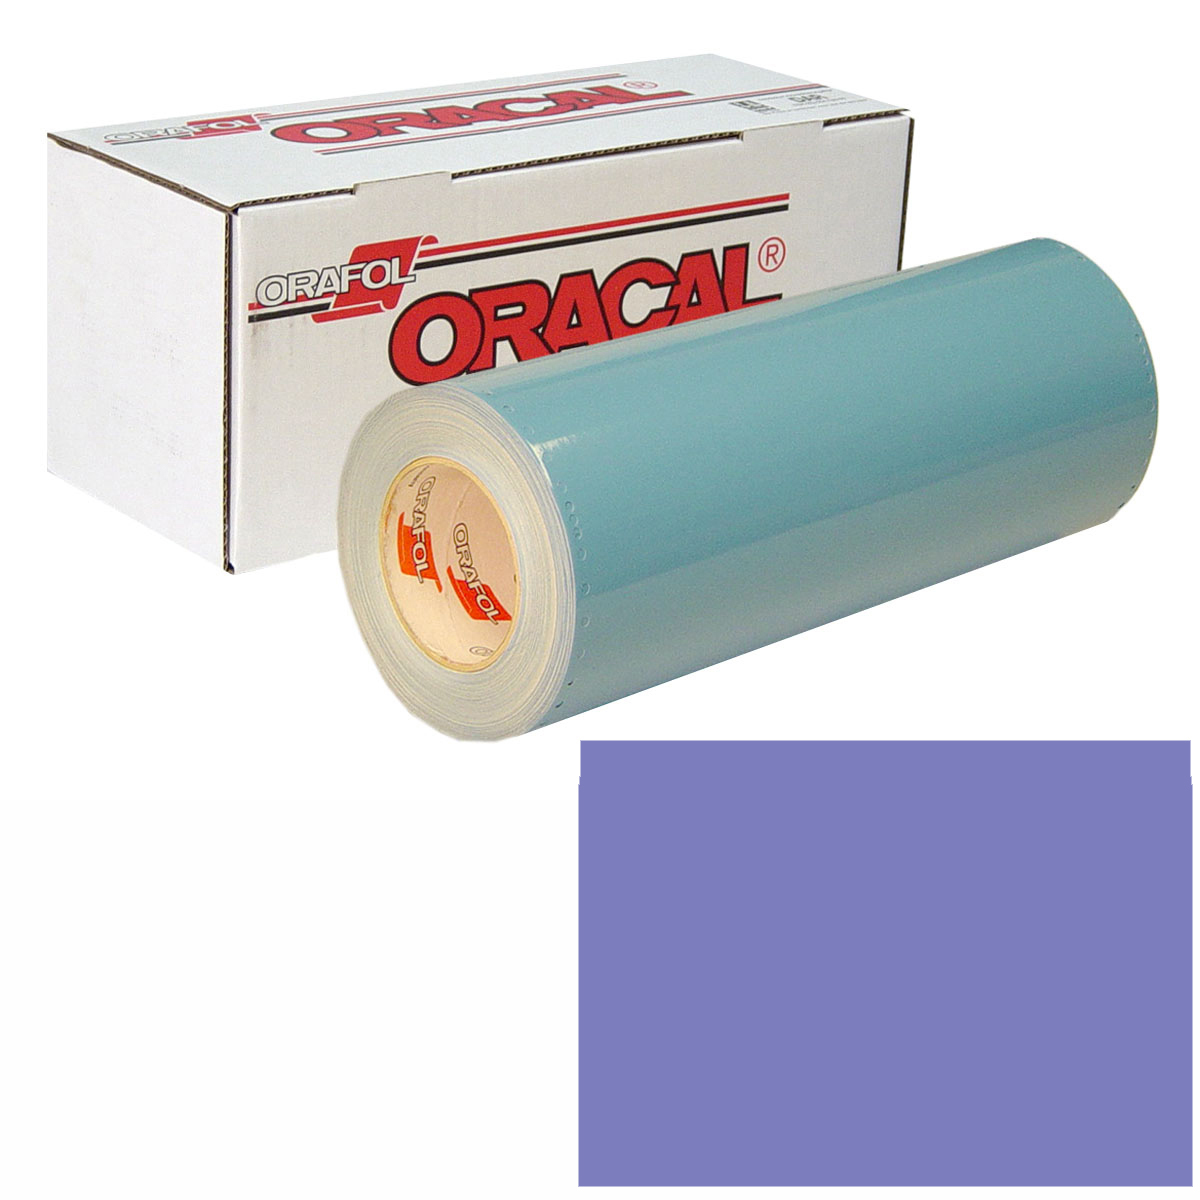 ORACAL 751 Unp 24in X 50yd 043 Lavender